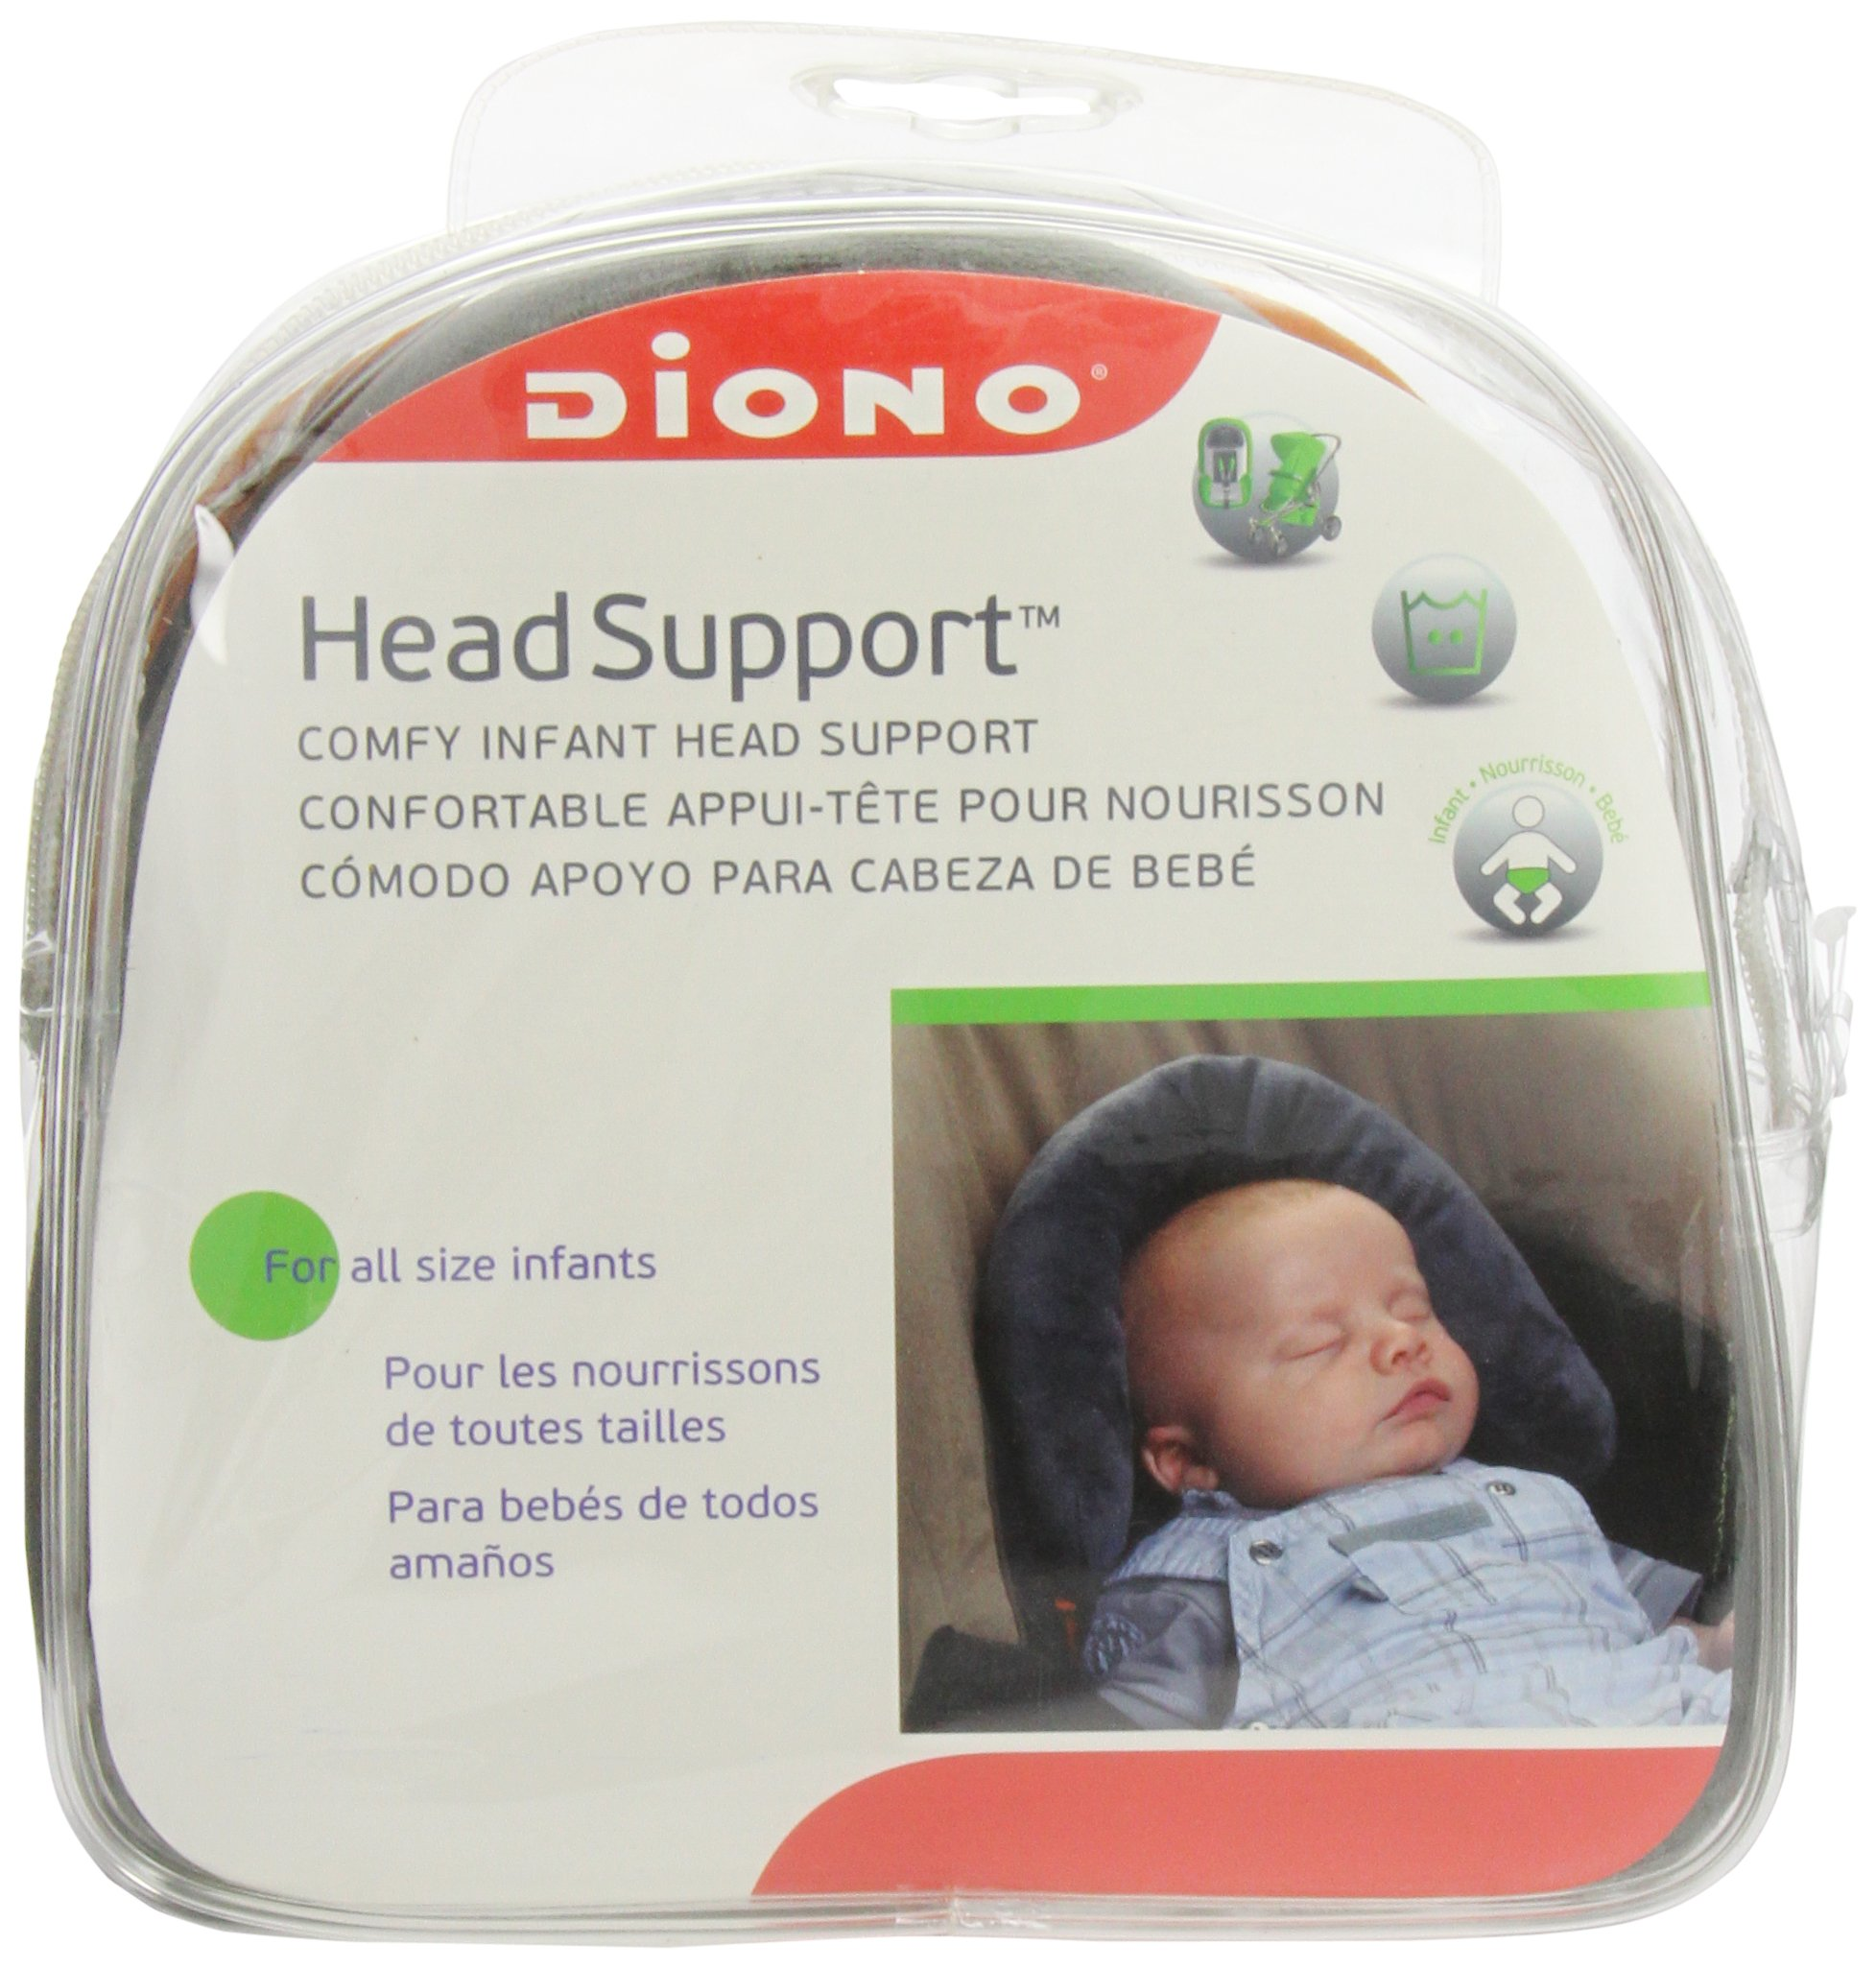 Diono Head Support, Protective Head Support for Use in Car Seats, Infant Carriers, and Strollers, Grey by Diono (Image #6)